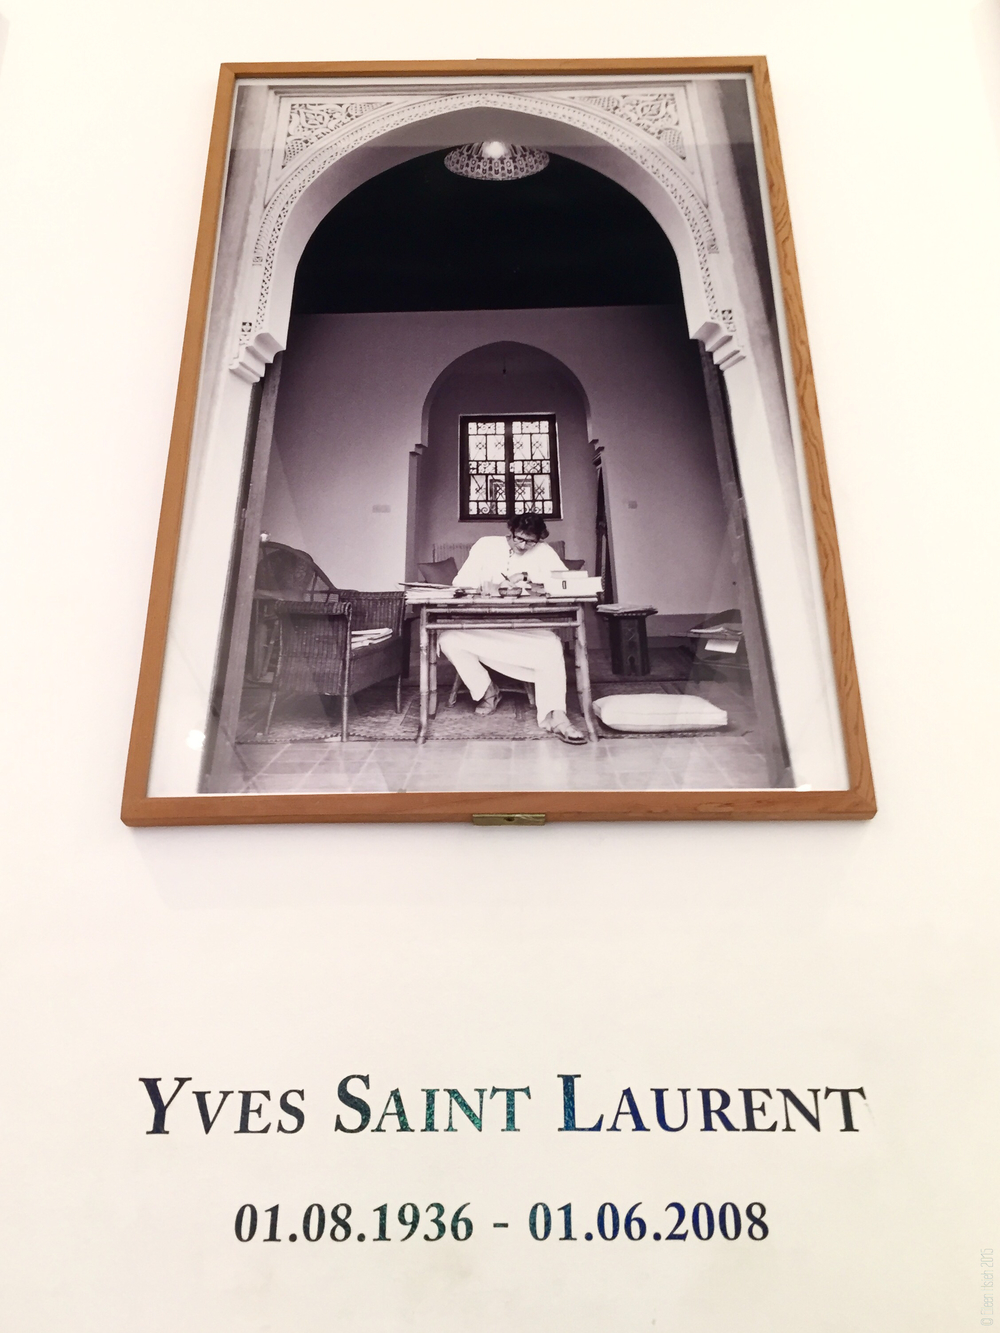 The world-renowned fashion designer Yves Saint Laurent at Jardin Majorelle. 名服裝設計師伊夫•聖洛朗 (YSL) 在馬若雷爾花園的舊宅裡。